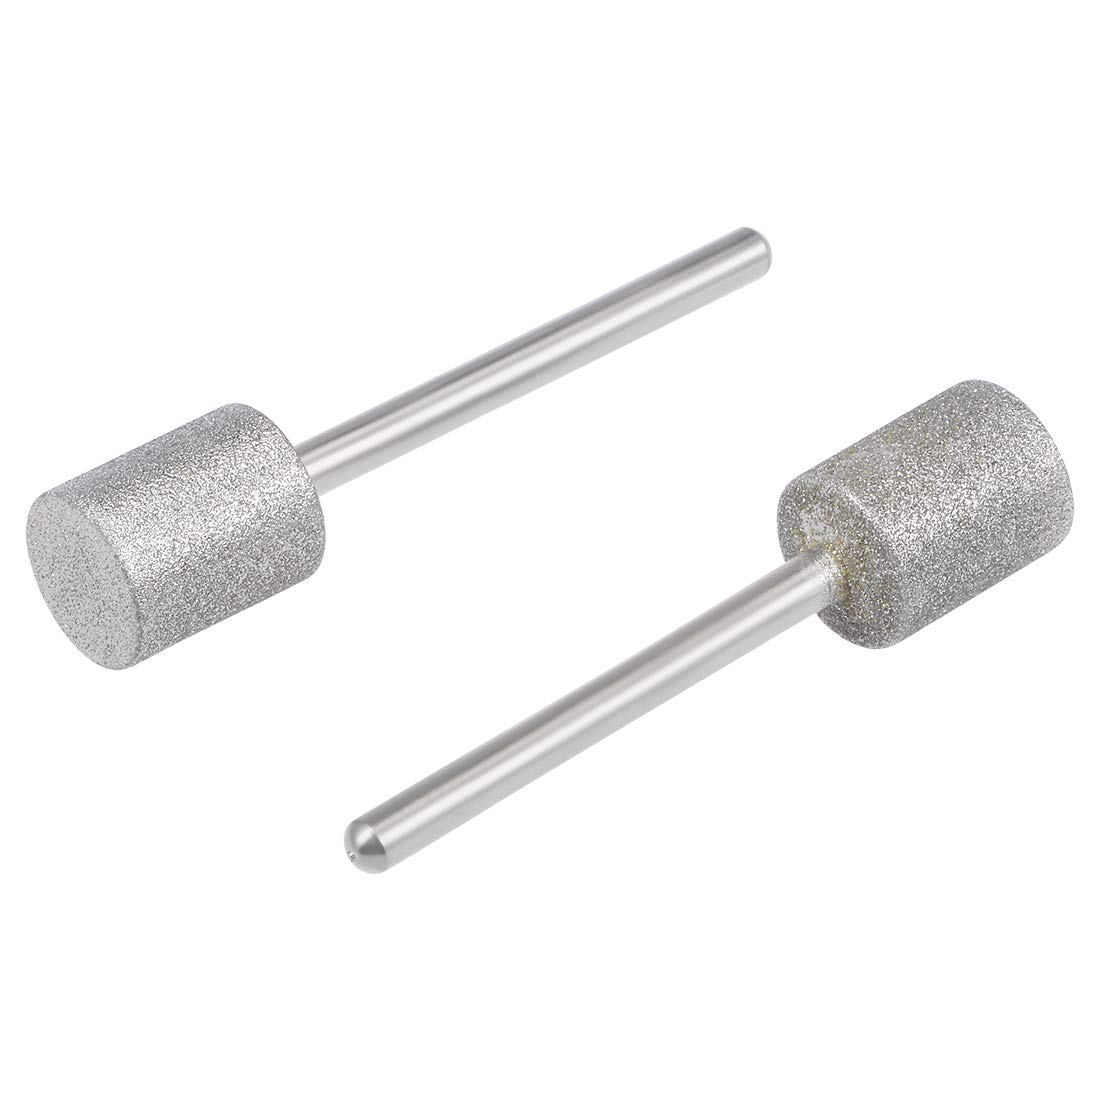 uxcell Diamond Mounted Points 12mm Cylinder Head 1//8 Inch Shank Grinding Rotary Tools Pack of 2